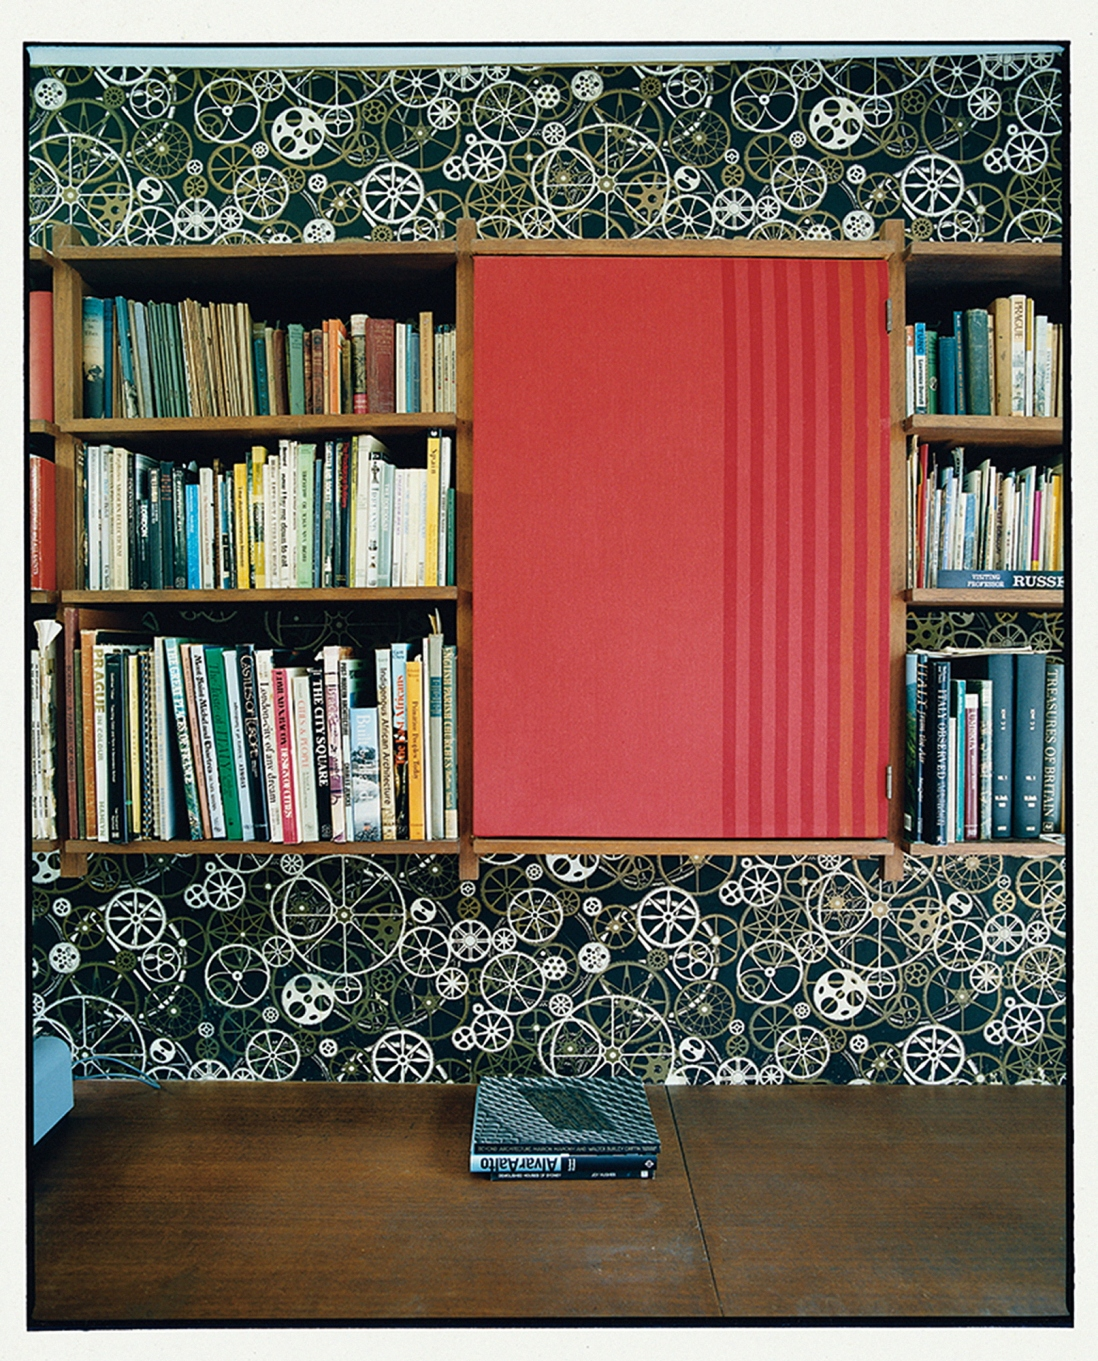 This is a photograph of a wall with filled bookshelevs in the centre, black and white wallpaper at the top and bottom and a large red panel to the right